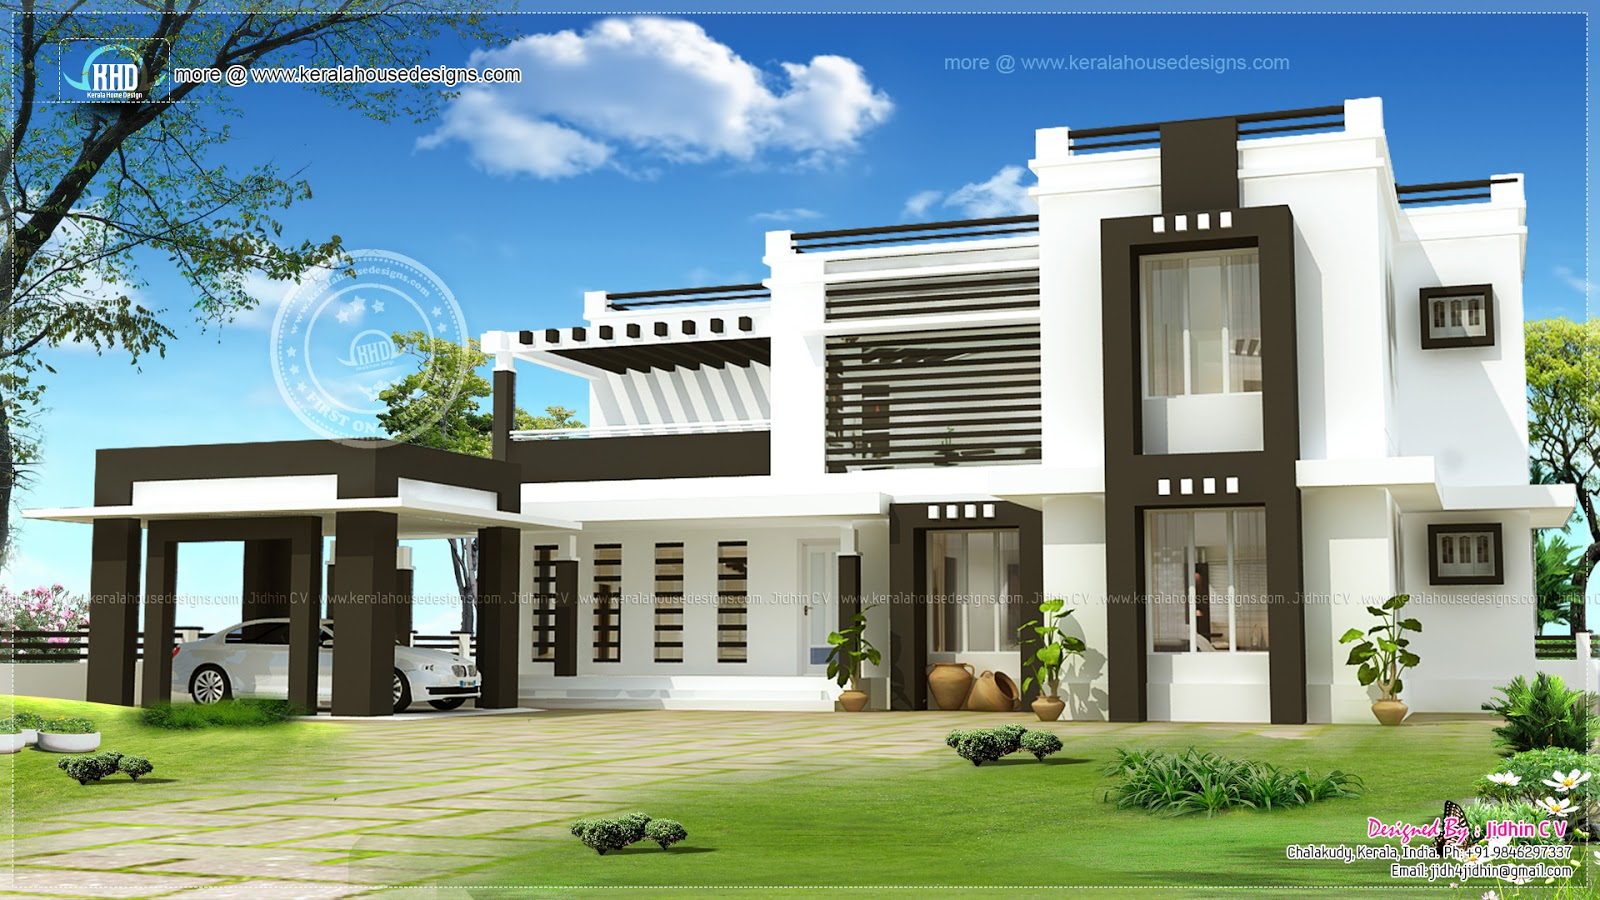 3400 sq ft flat roof house exterior kerala home design for Exterior design building